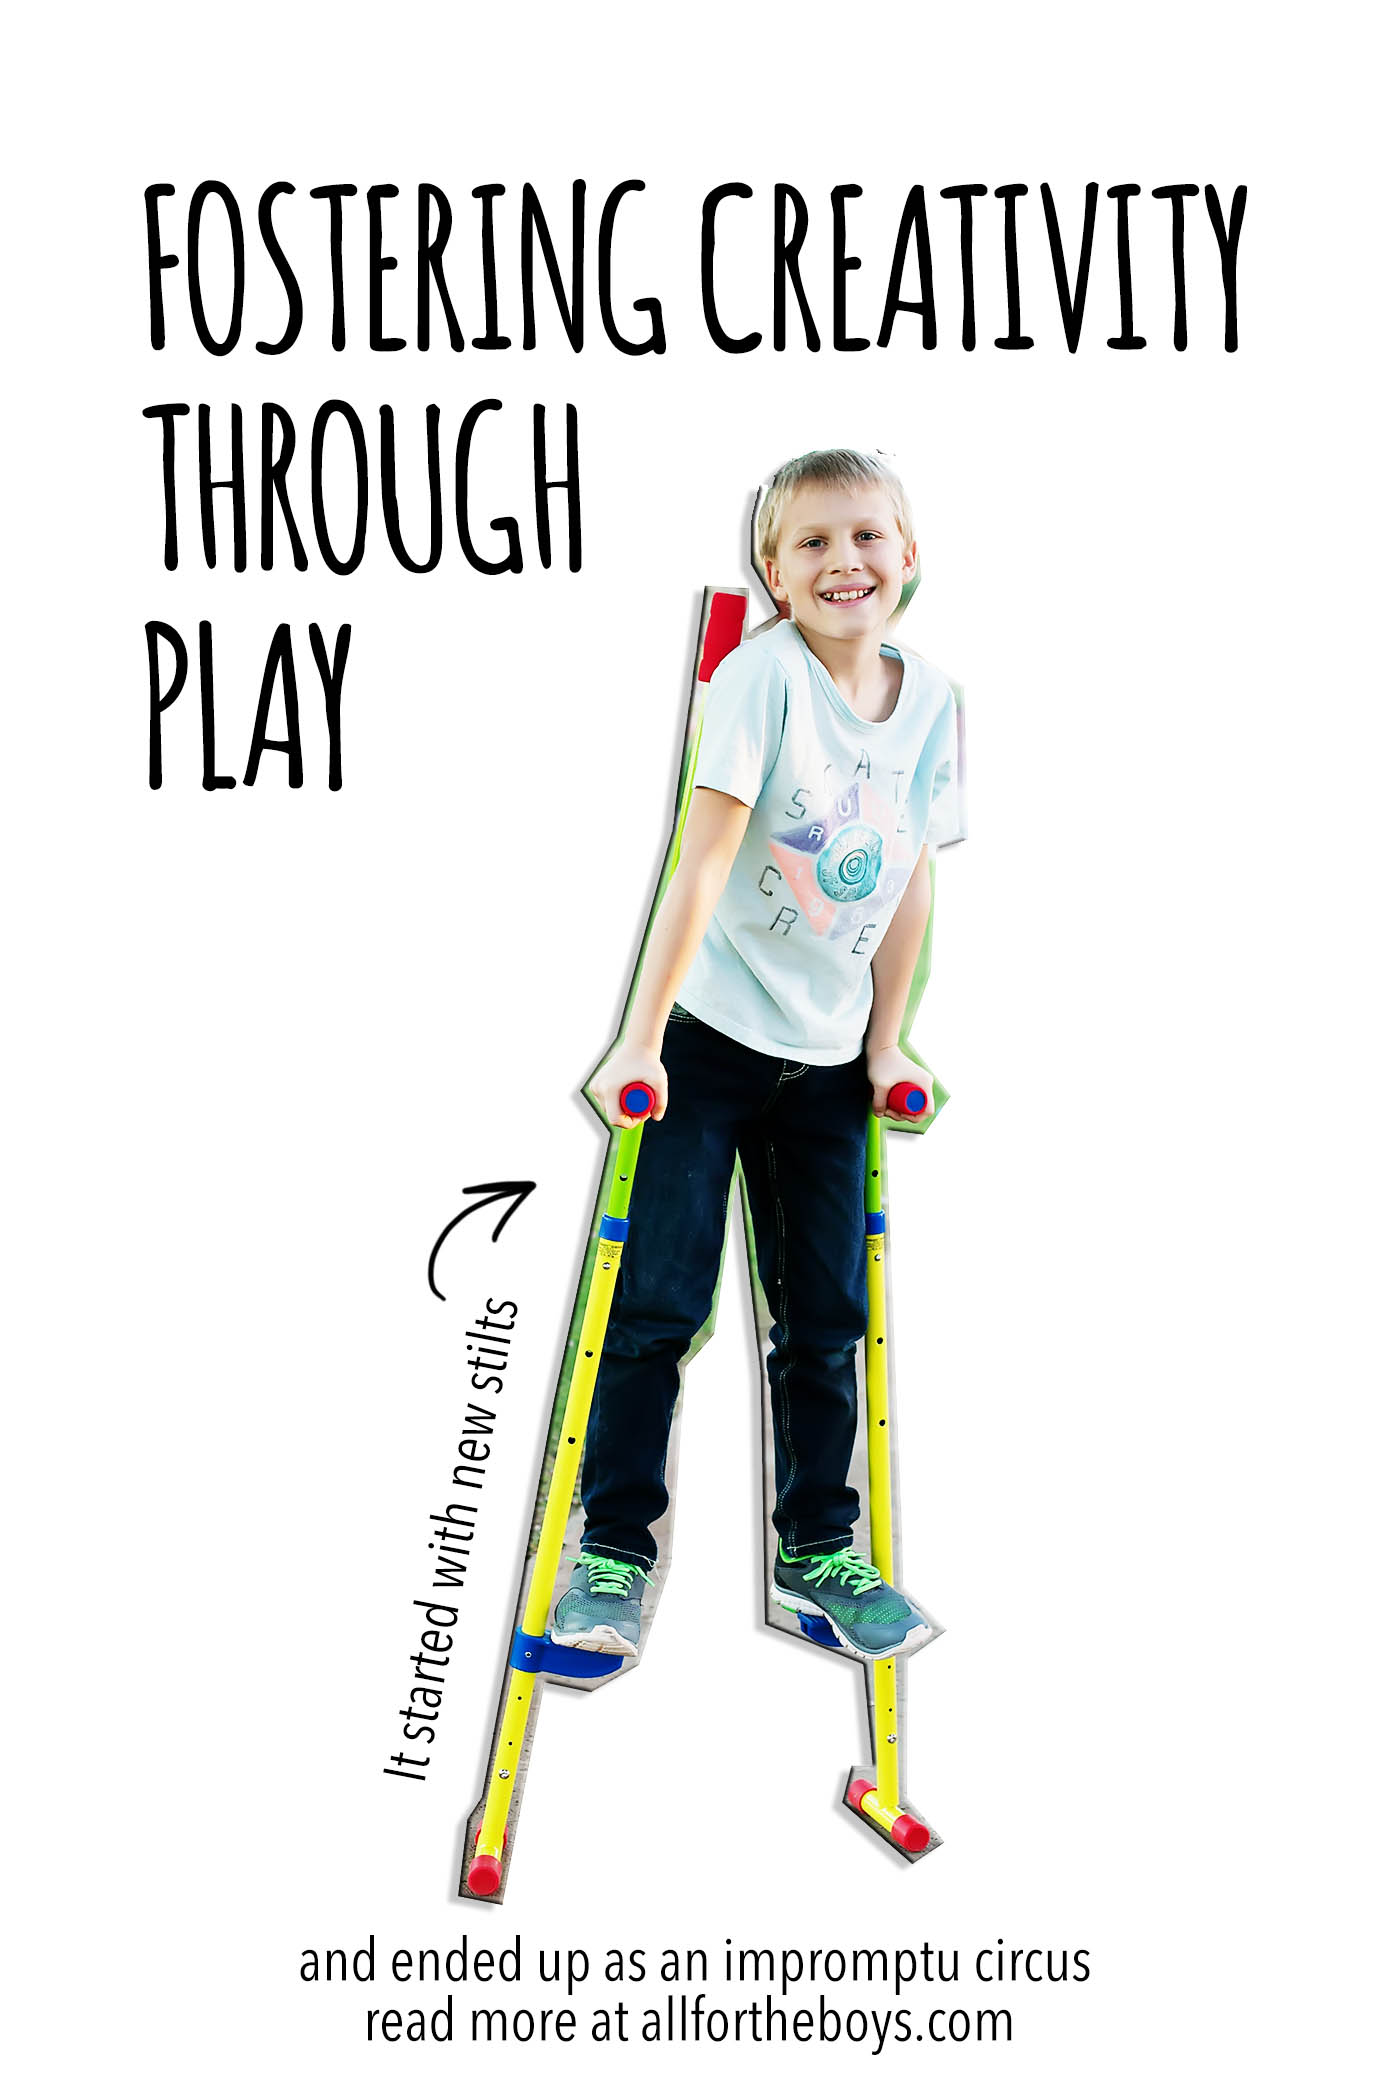 Fostering creativity through play